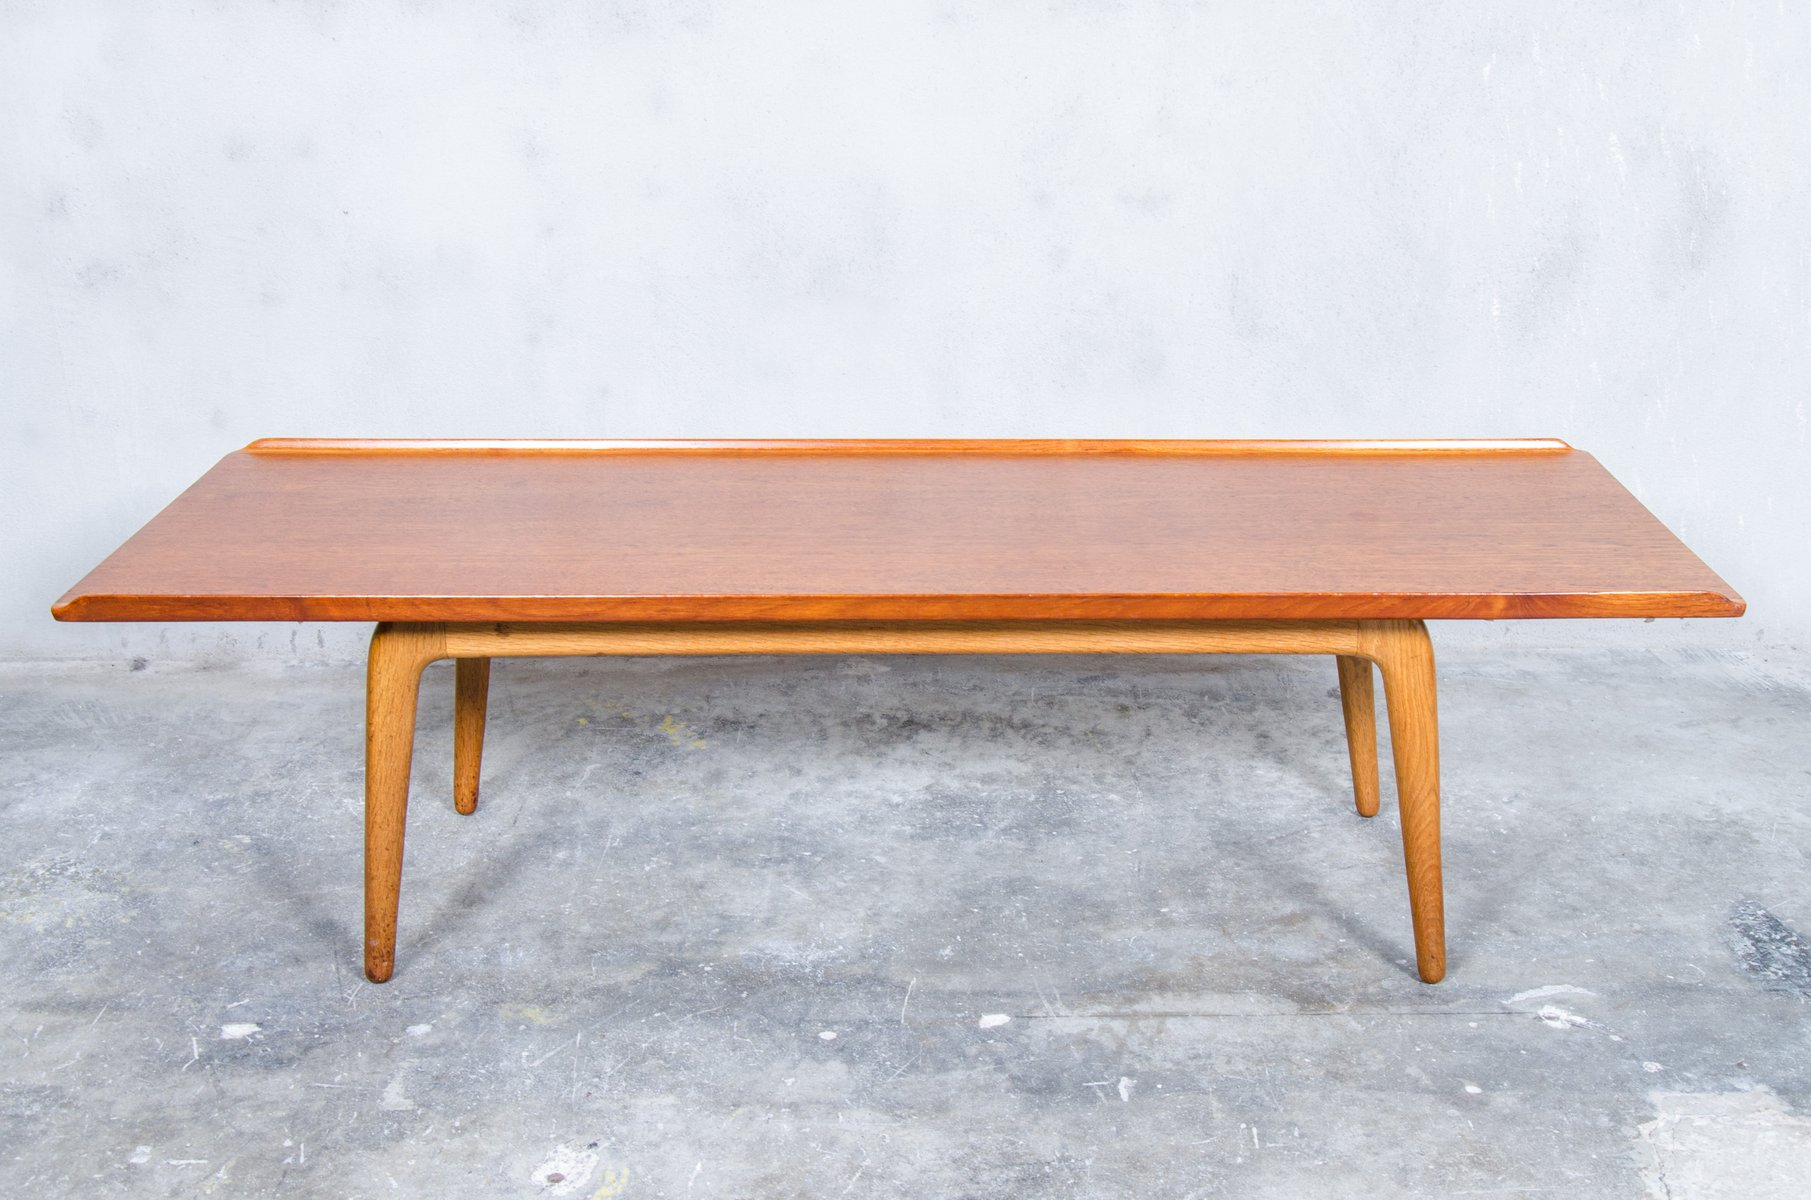 Large Teak Oak Coffee Table By Aksel Bender Madsen For Bovenkamp 1960s For Sale At Pamono